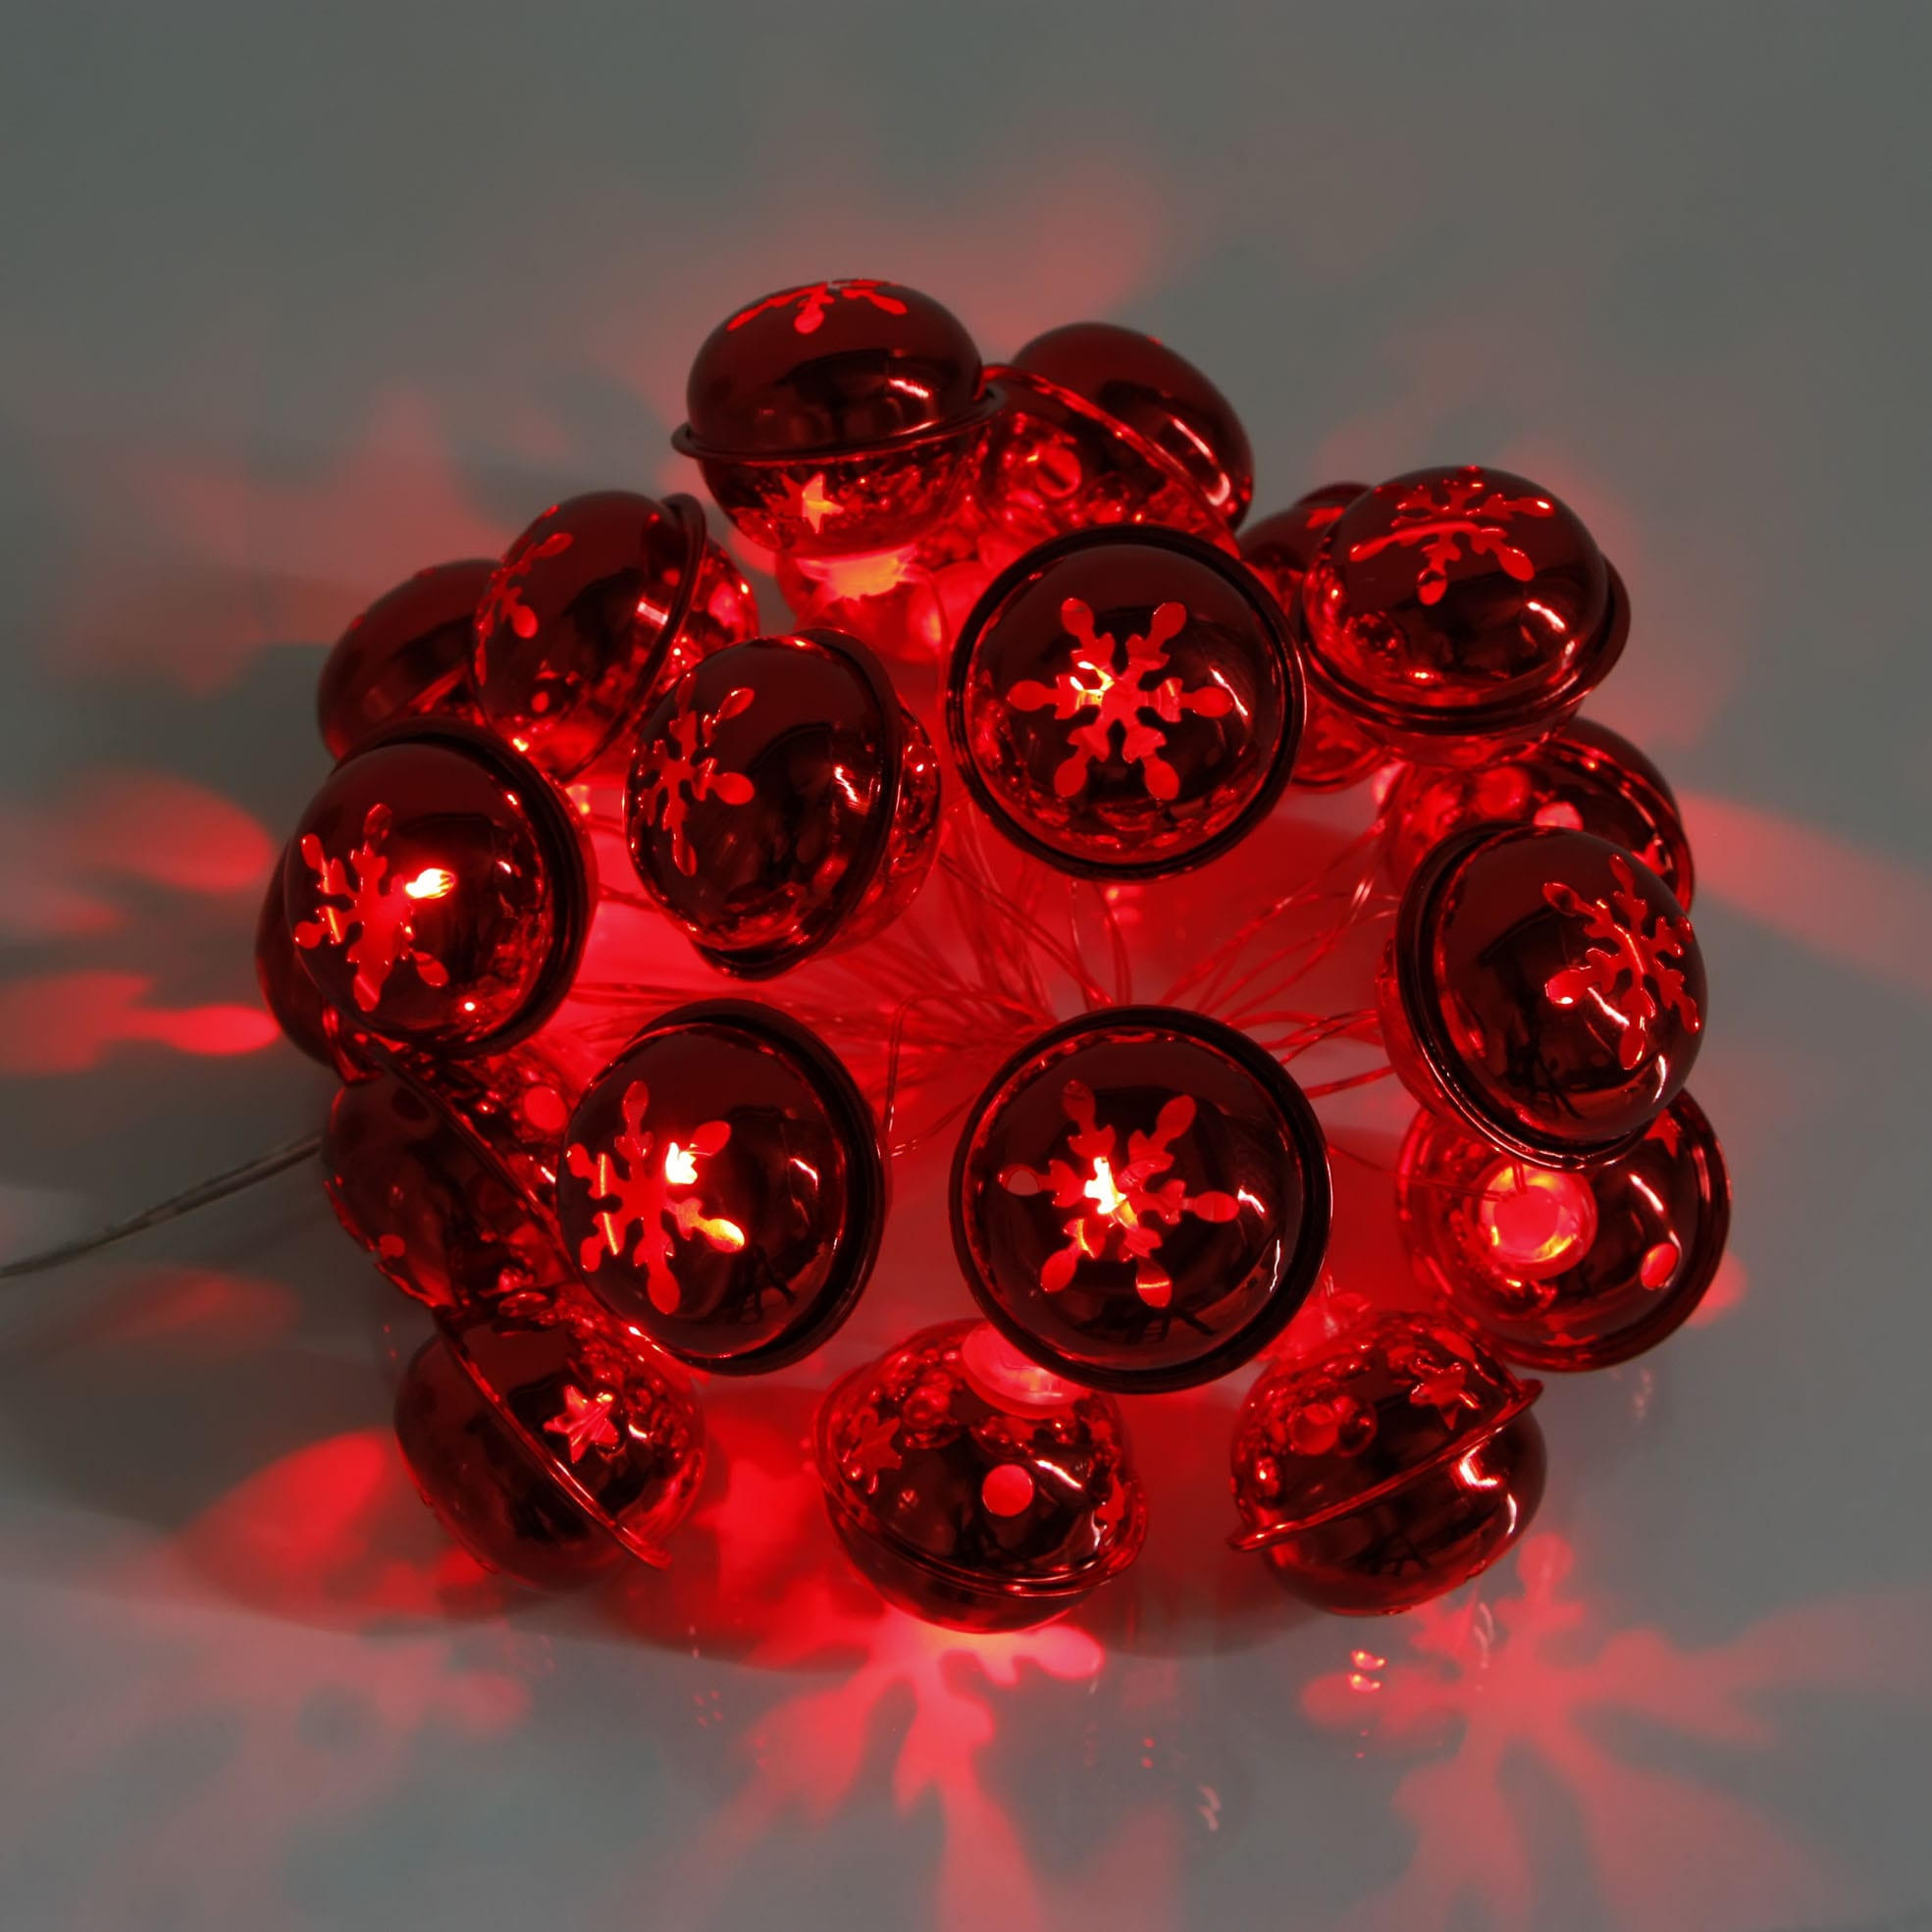 Pre-Painted Steel Roll Outdoor Halloween Decorations - MM LED SMD SL With Caps MYHH67484 – Zhongxin